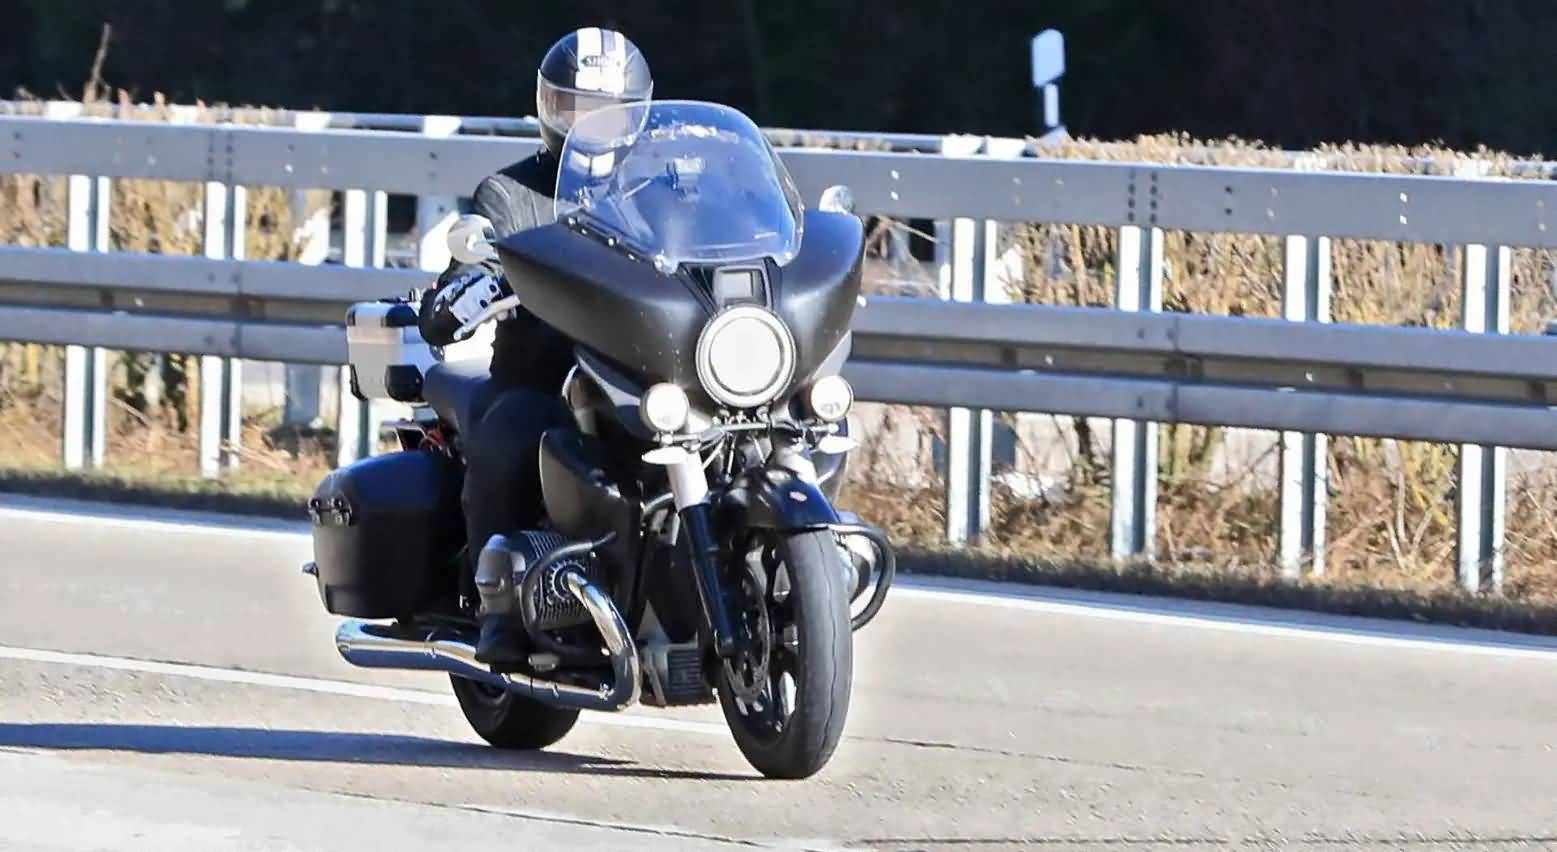 Riding Shots of BMW R18